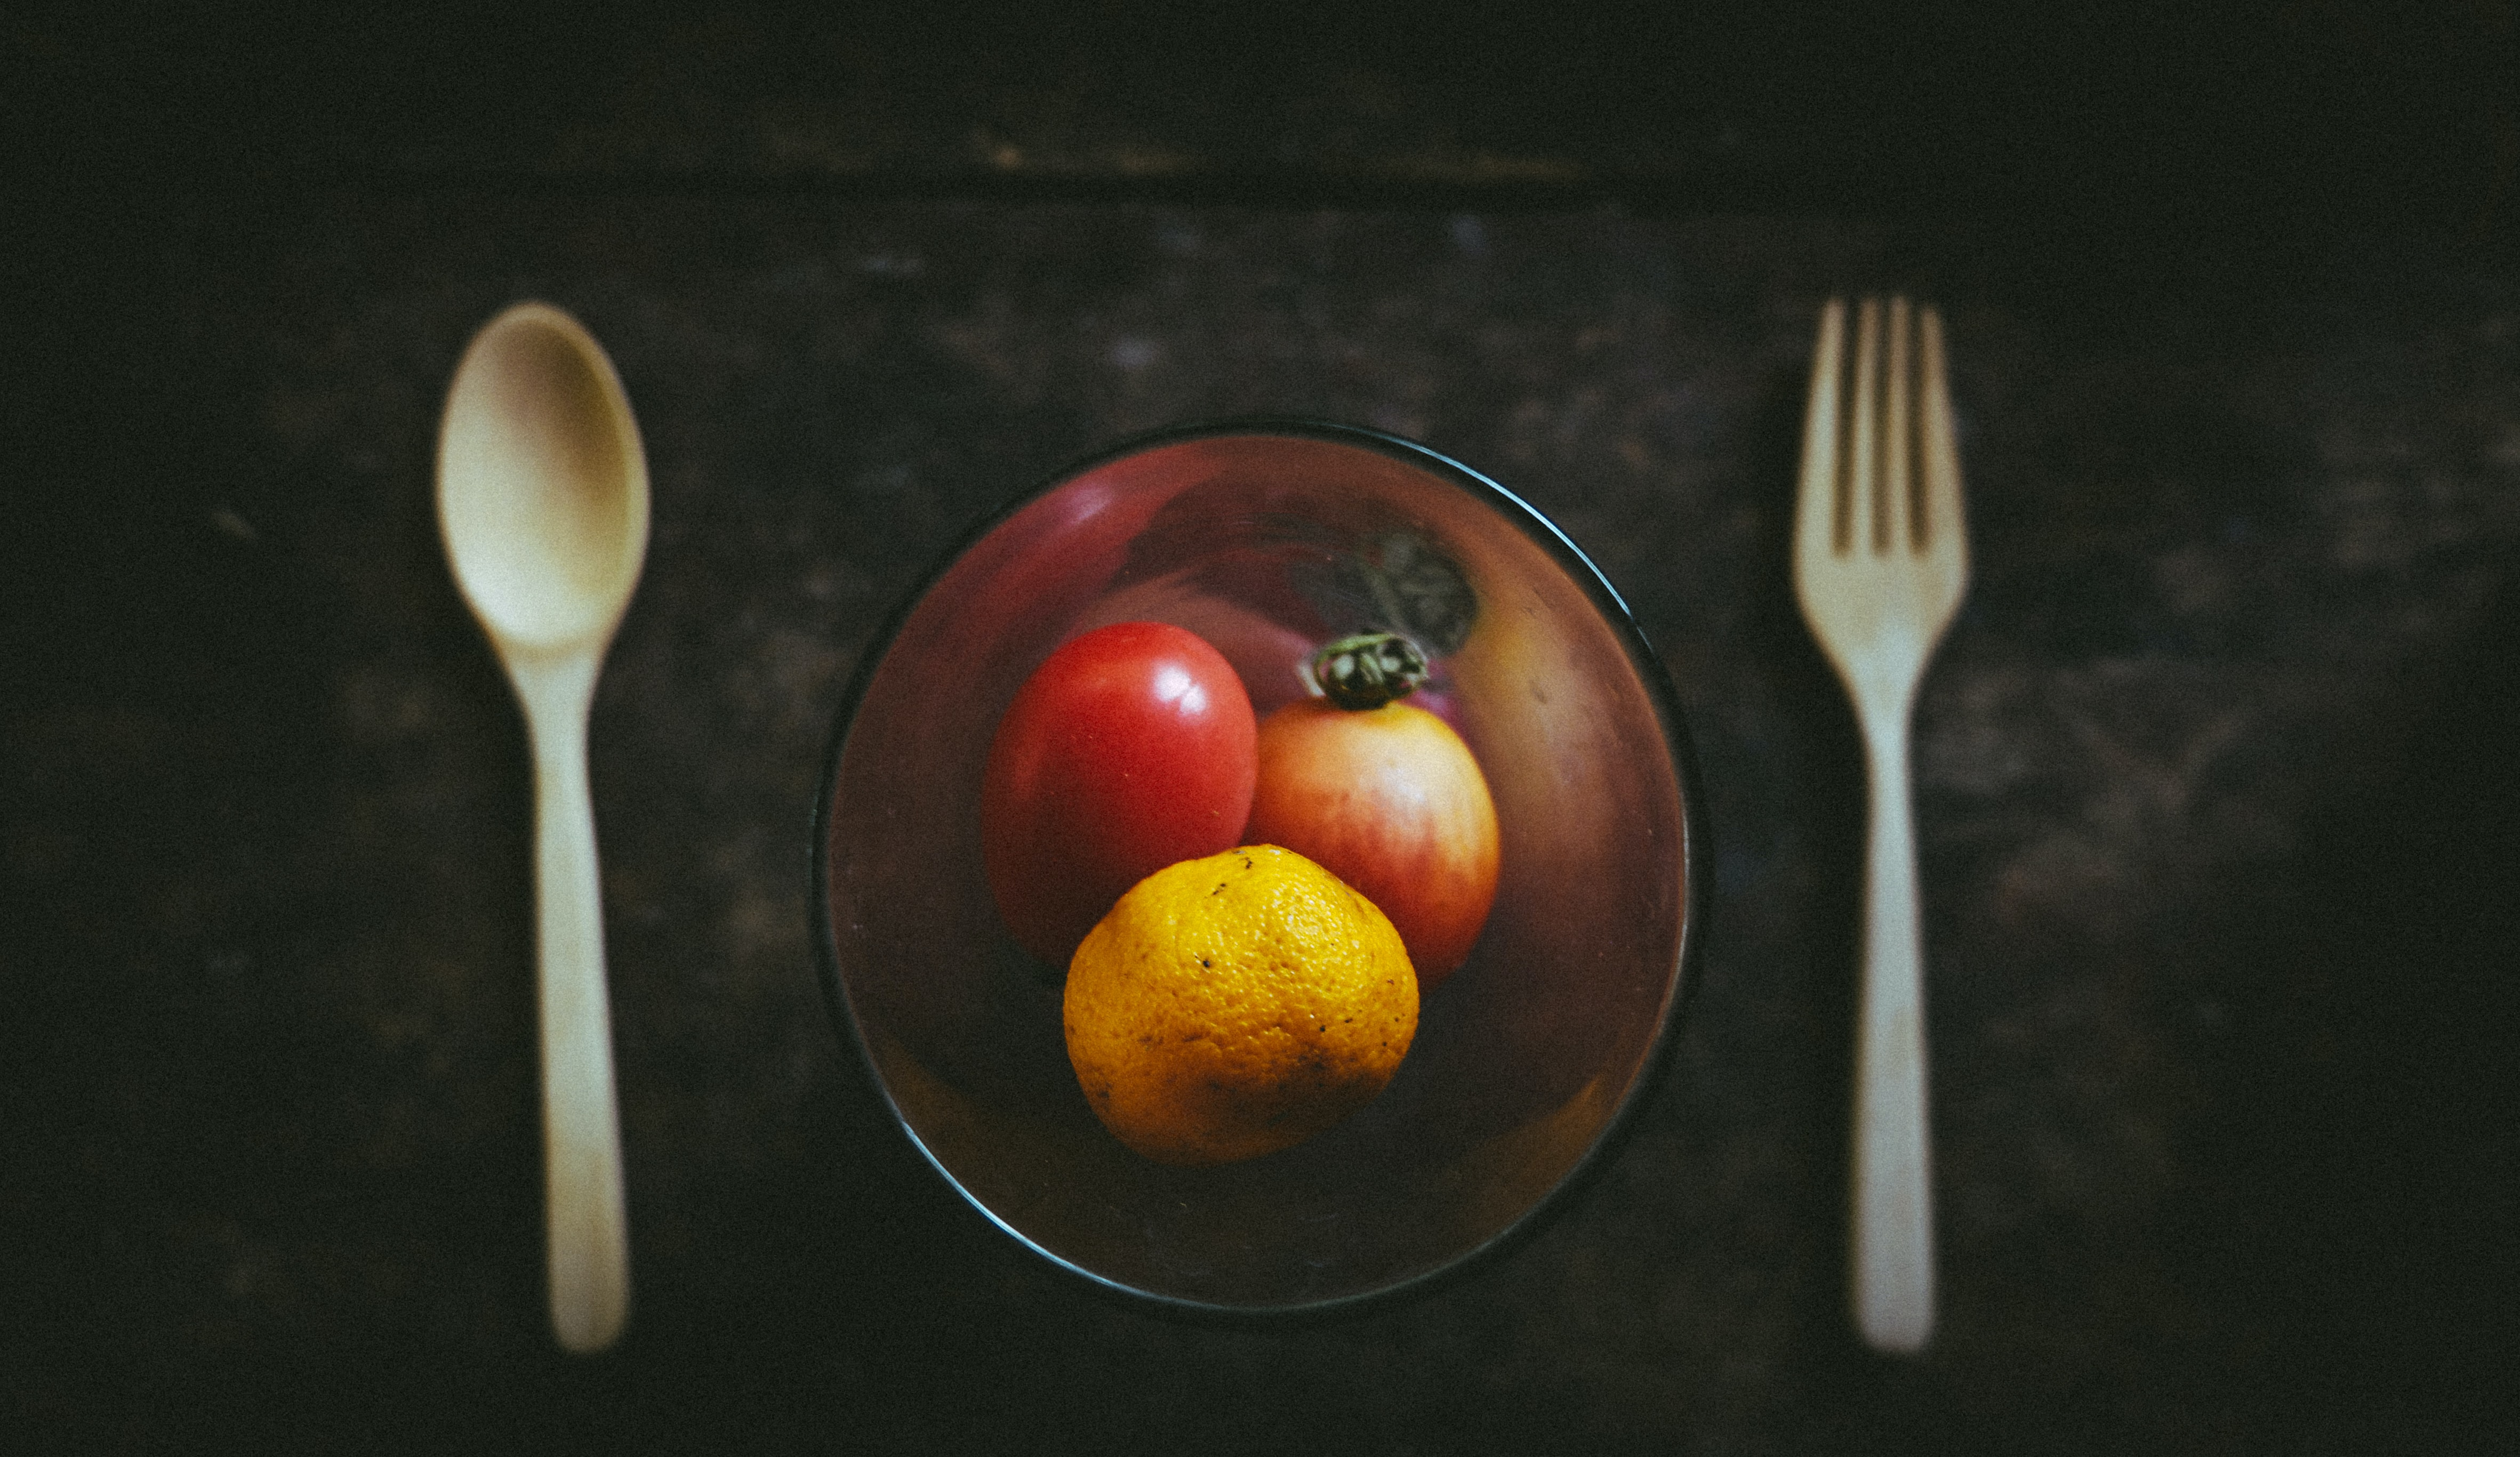 Tomato, orange, and vegetable in a bowl next to a fork and knife